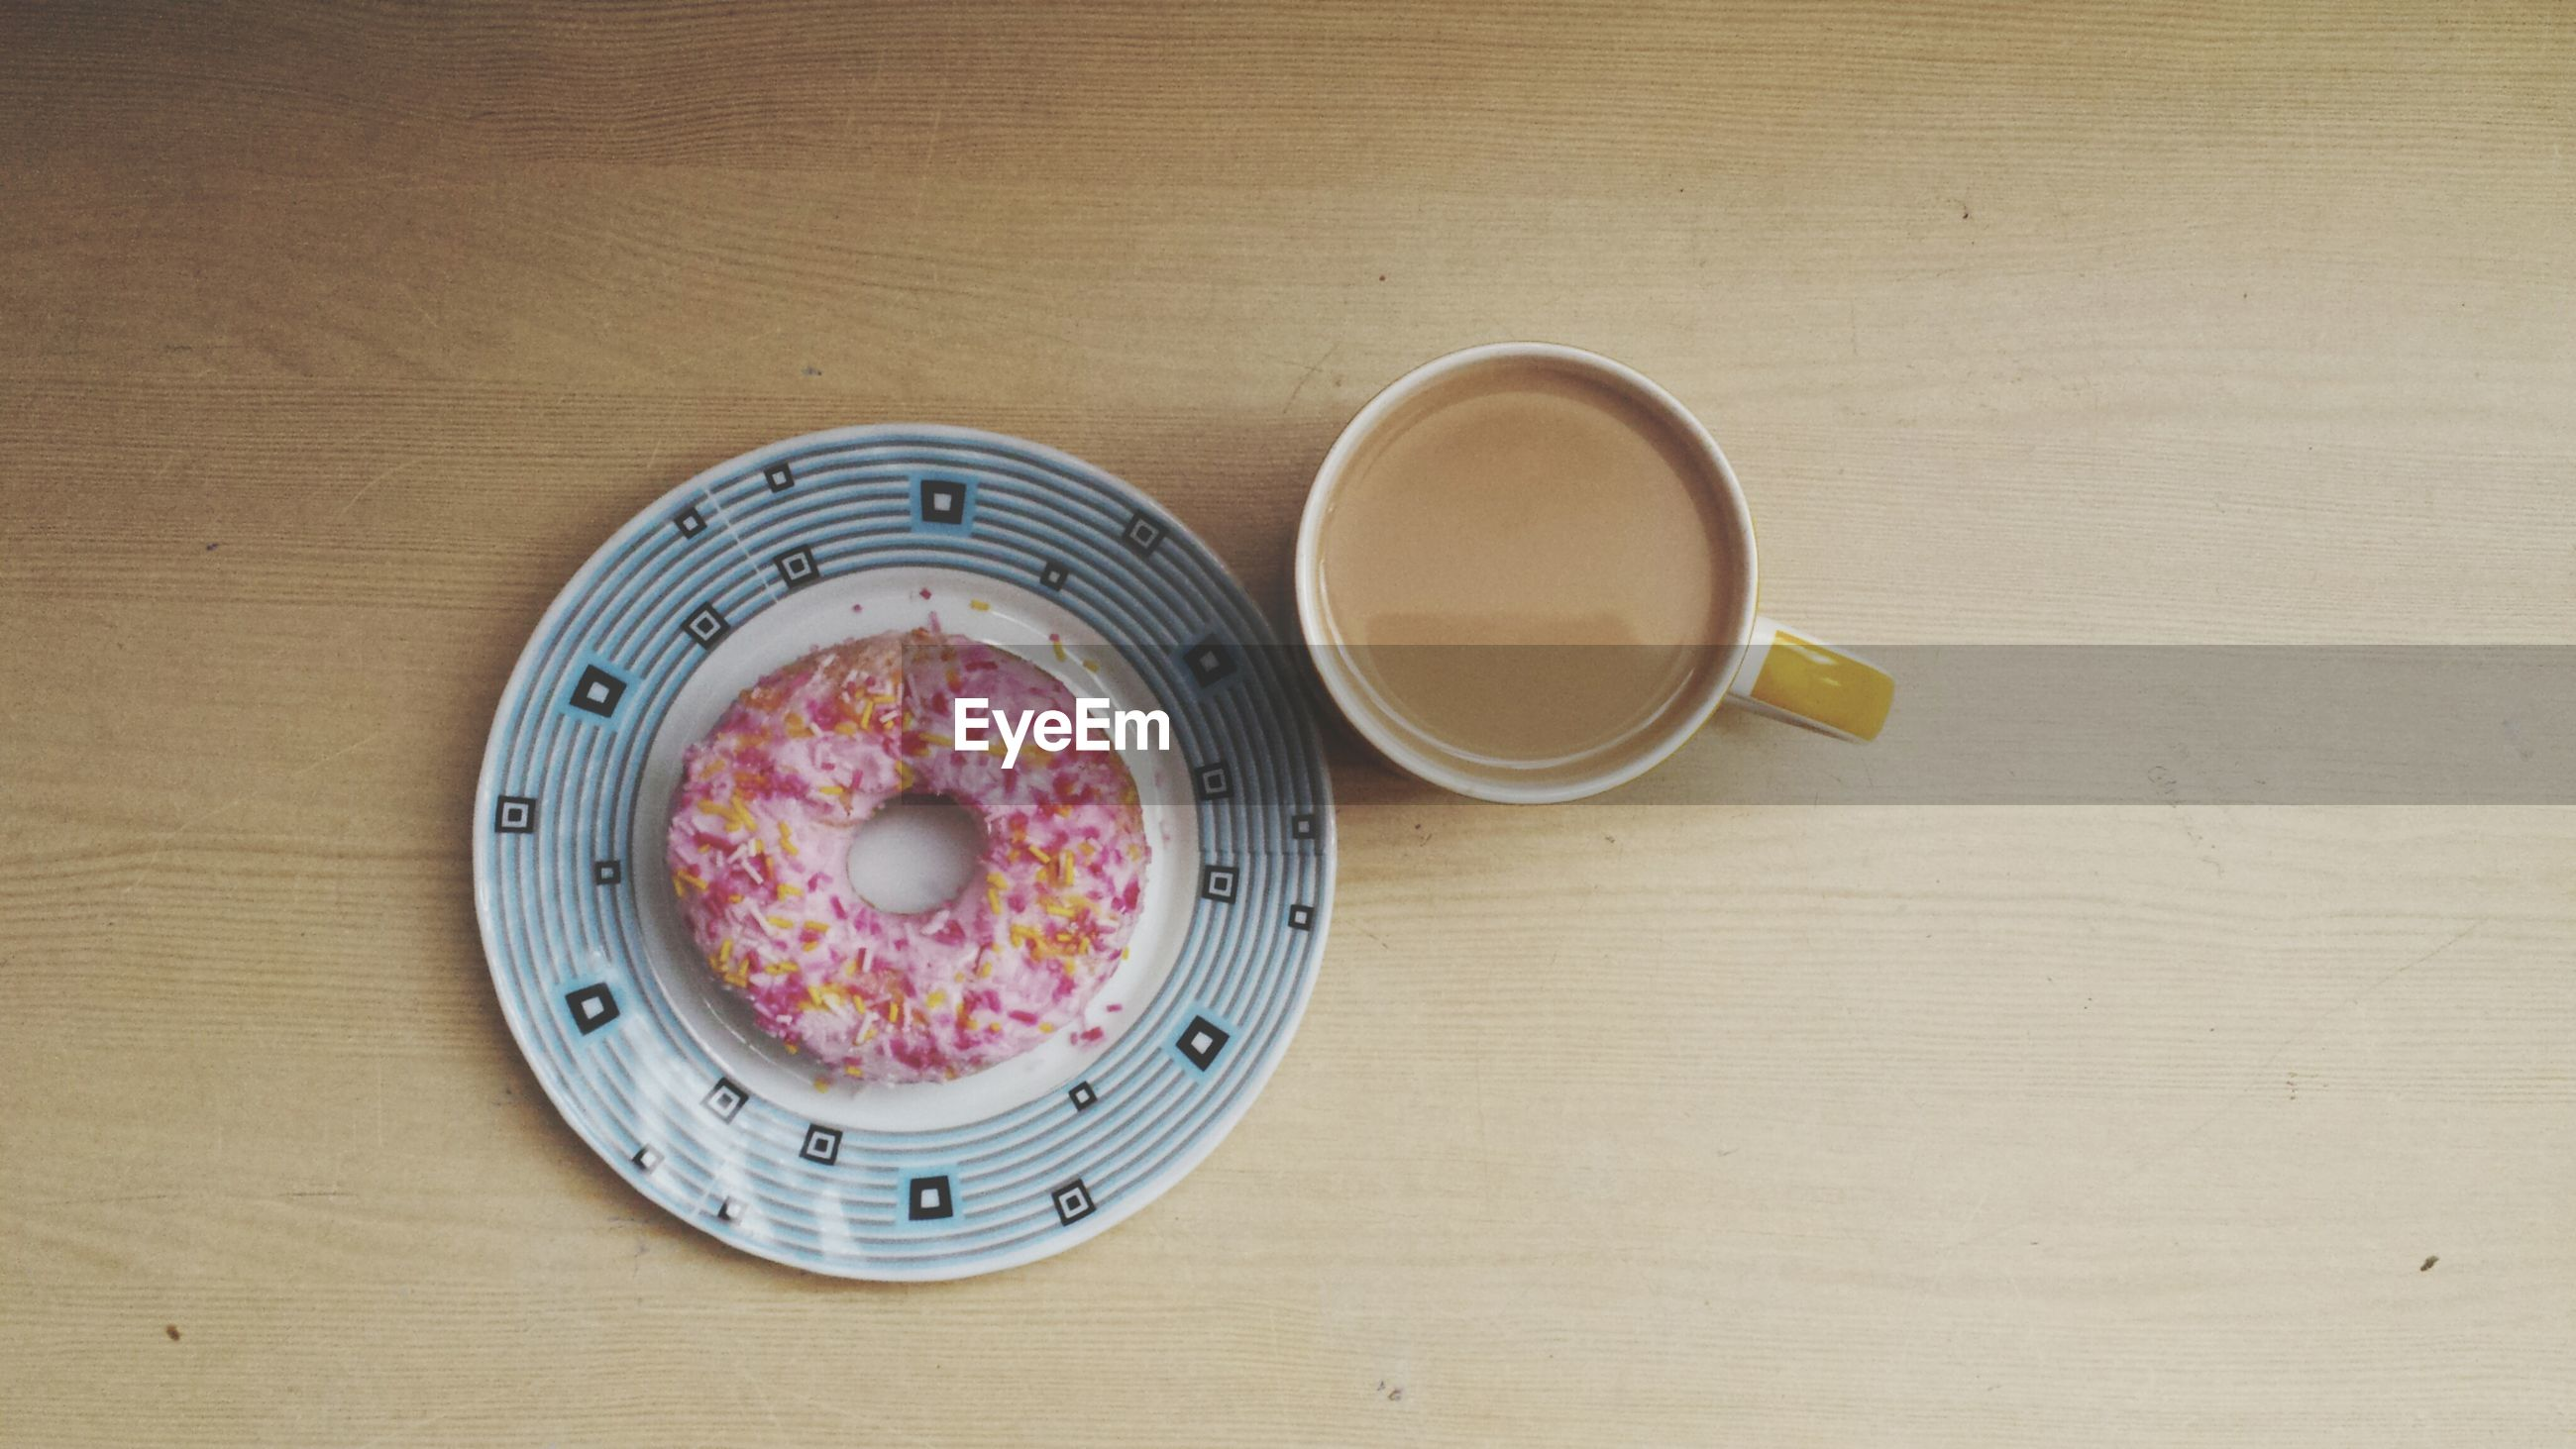 food and drink, table, indoors, freshness, food, still life, directly above, plate, high angle view, ready-to-eat, healthy eating, bowl, drink, refreshment, wood - material, spoon, serving size, breakfast, indulgence, overhead view